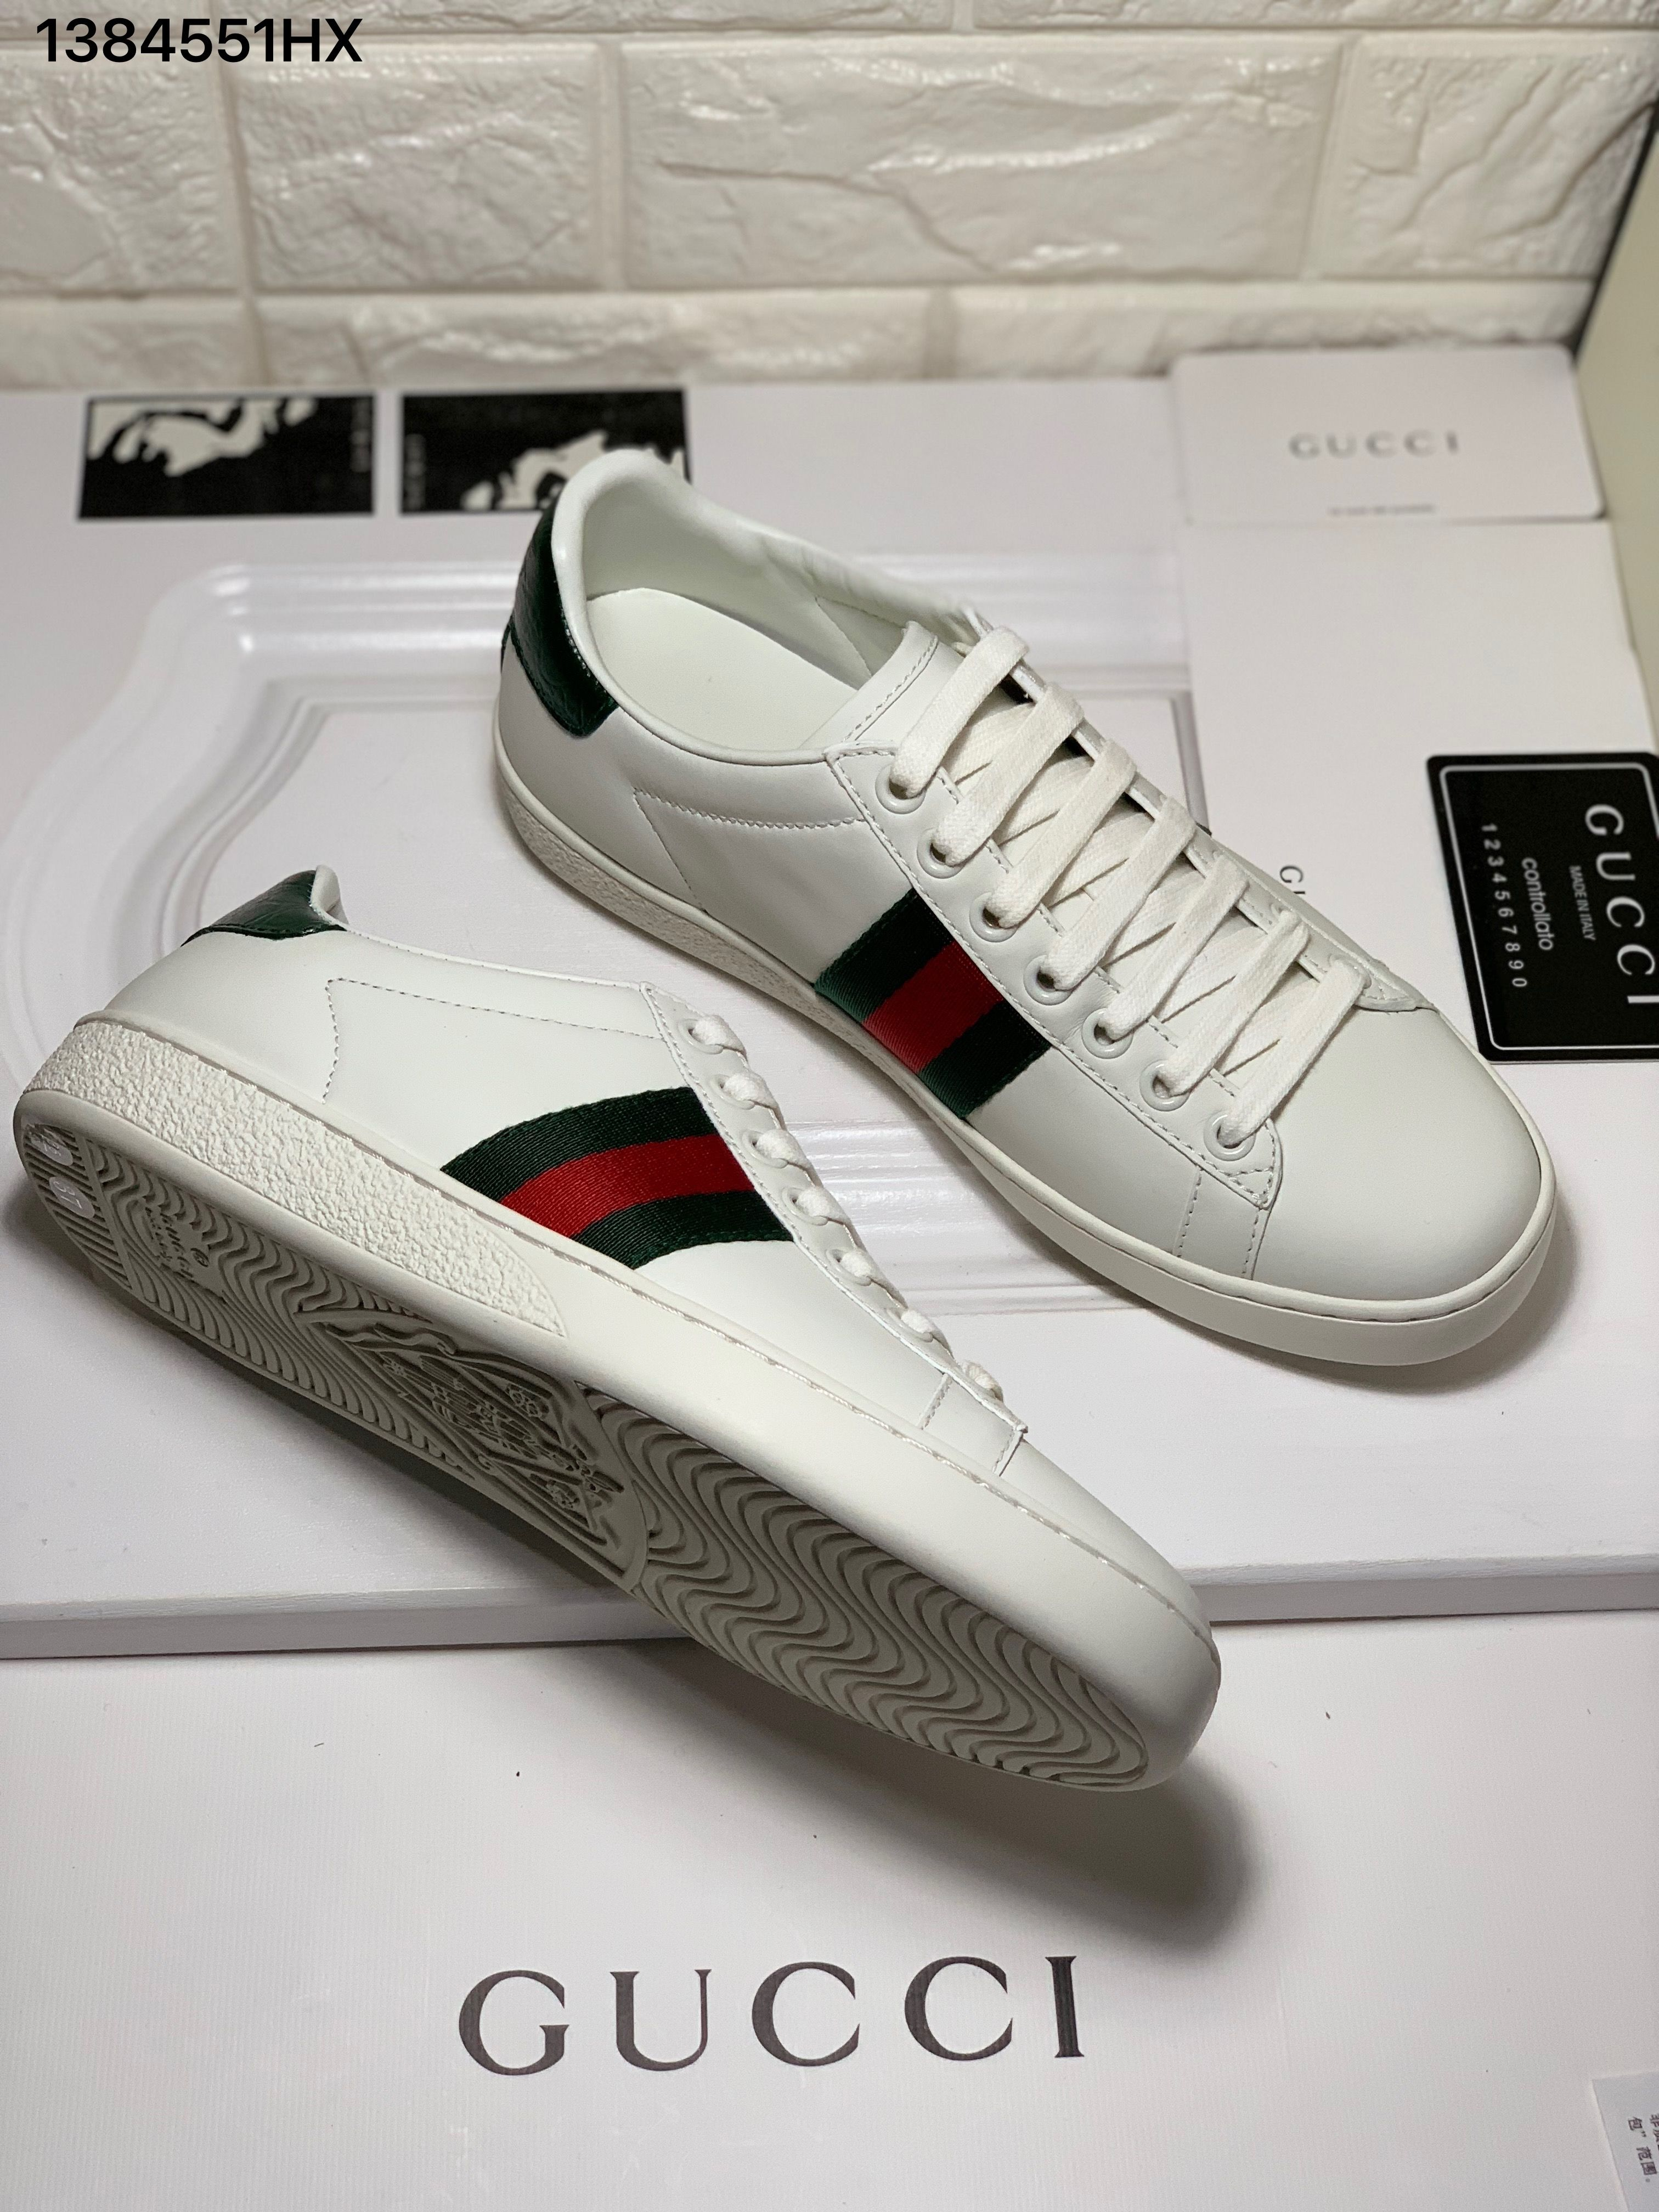 Gucci ace sneakers croc green backside white leather shoes